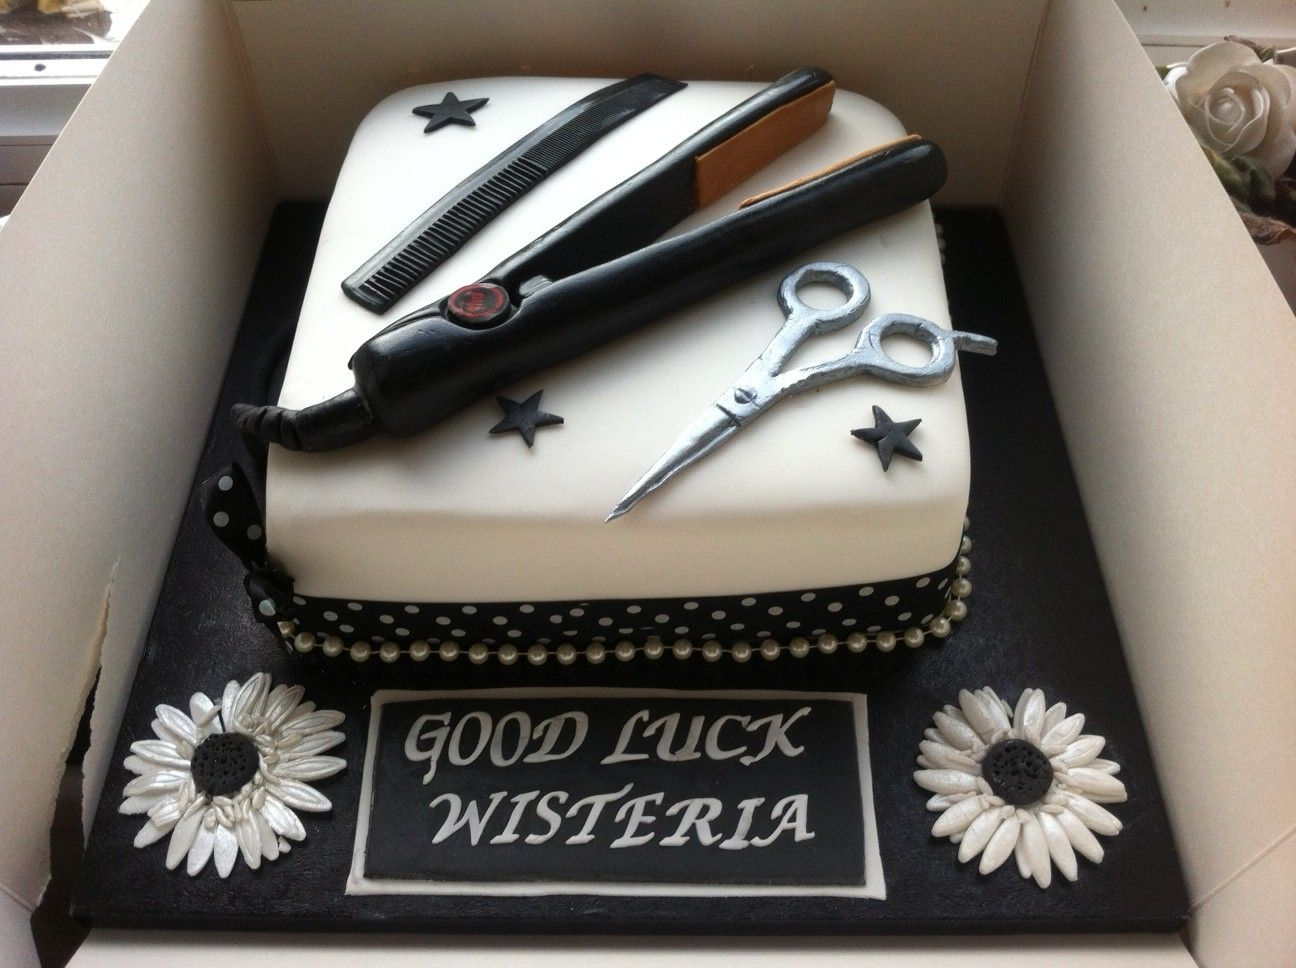 Ghd Hair Salon Cake Other Cakes Hair Stylist Cake Hairdresser Cake Cosmetology Cake